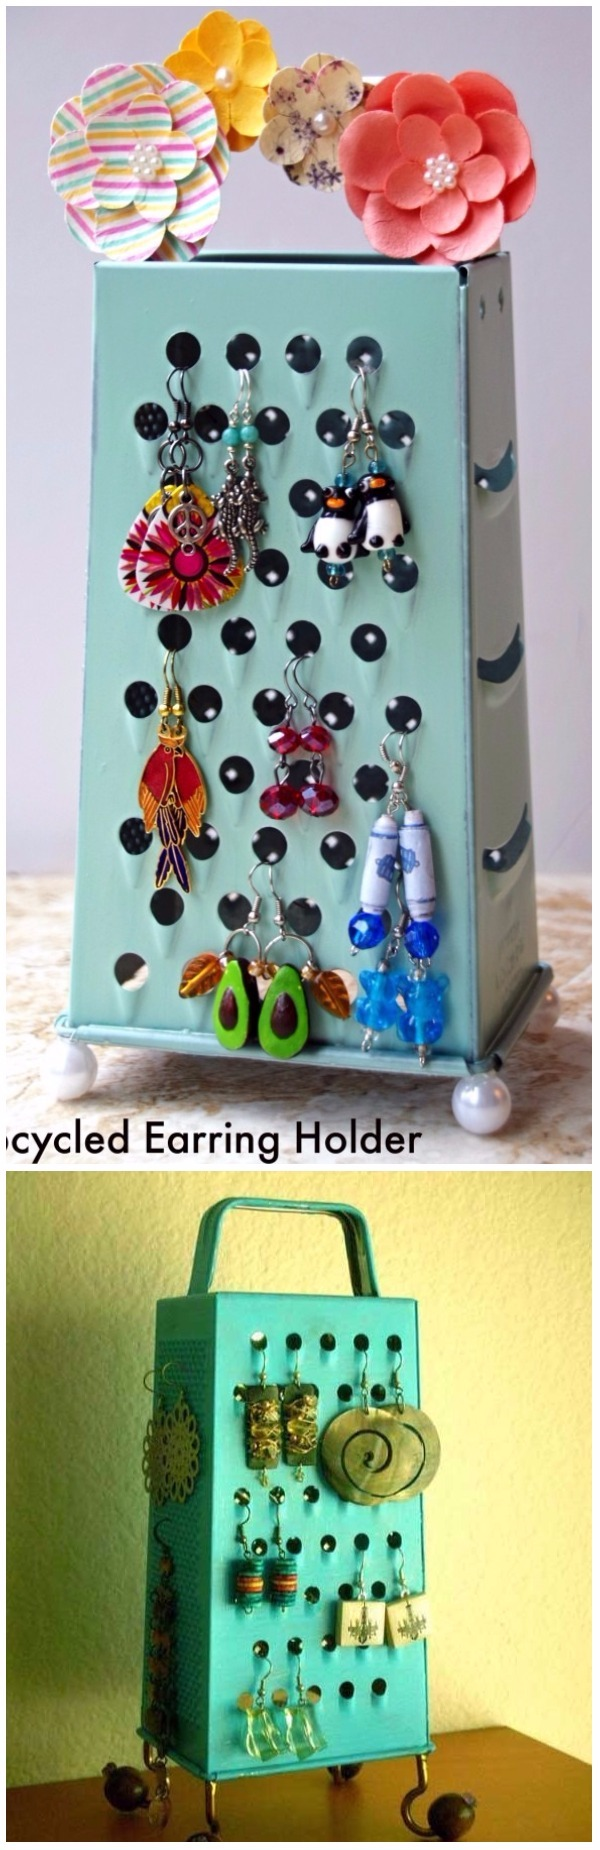 Diy Ideas To Recycle Old Kitchen Stuff